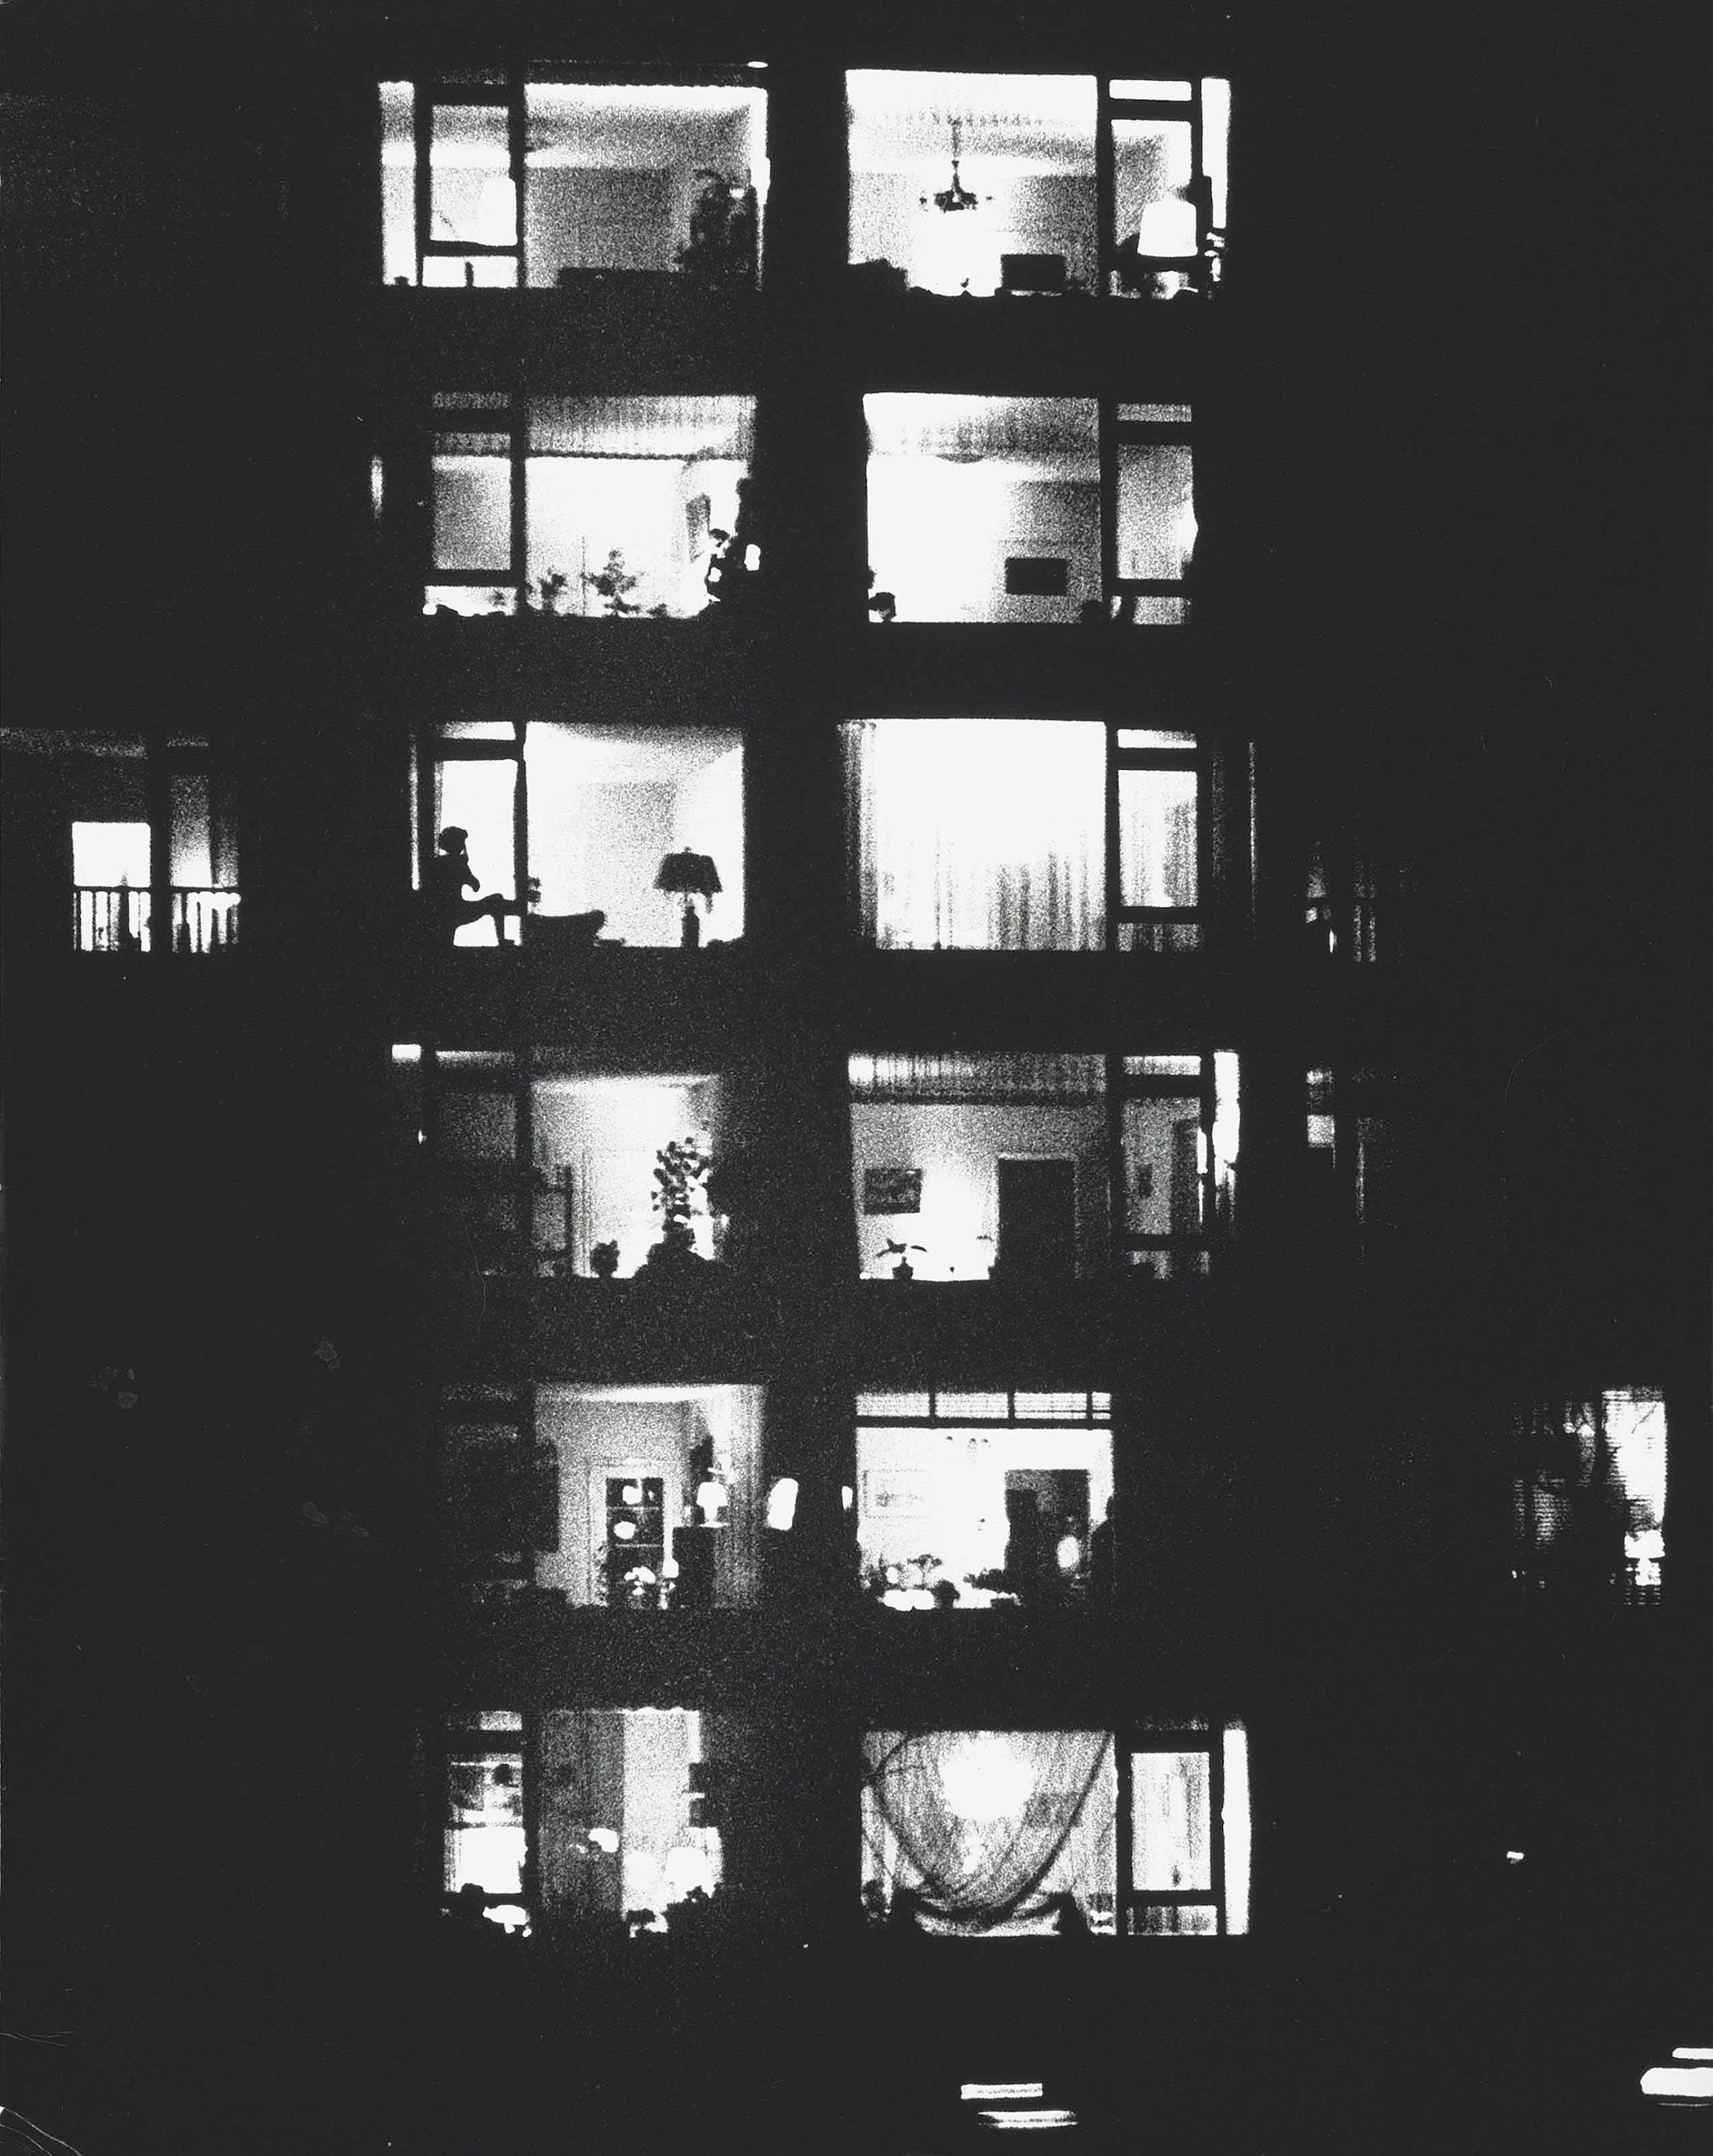 Untitled (Illuminated building at night), c. 1960